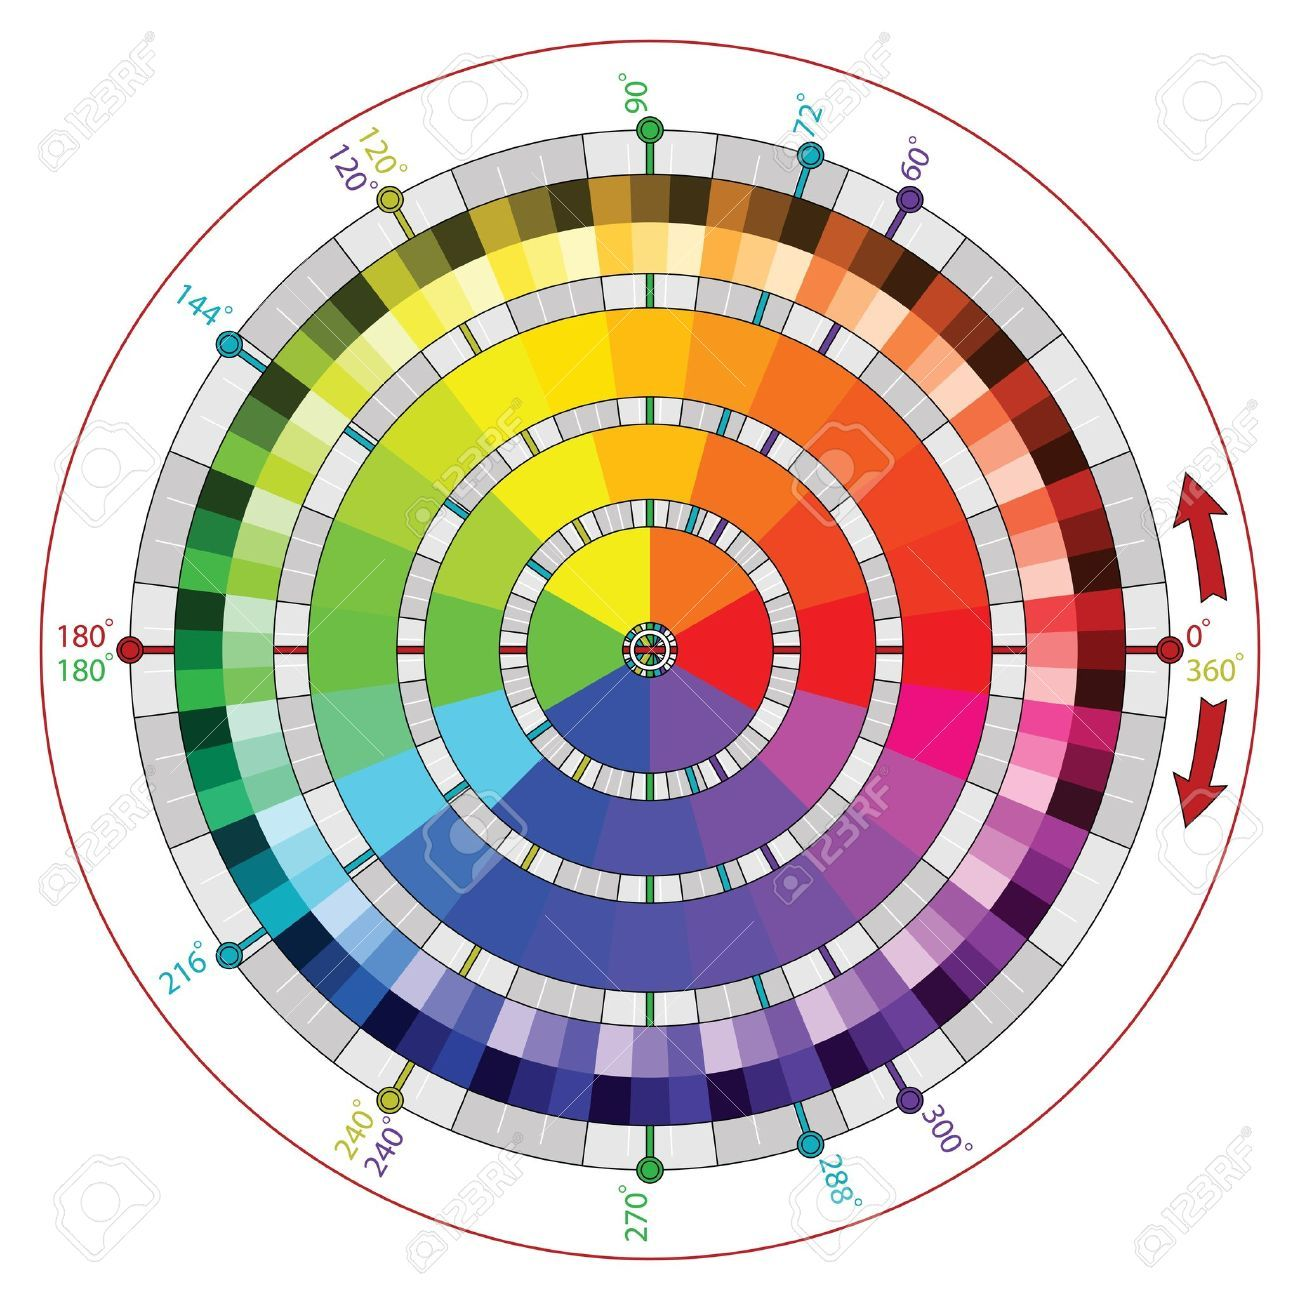 Color theory online games - Take Alison S Free Online Art Course That Covers Color Theory Specifically Color Theory For Designers And Artists Learn About Light And Color Mixing